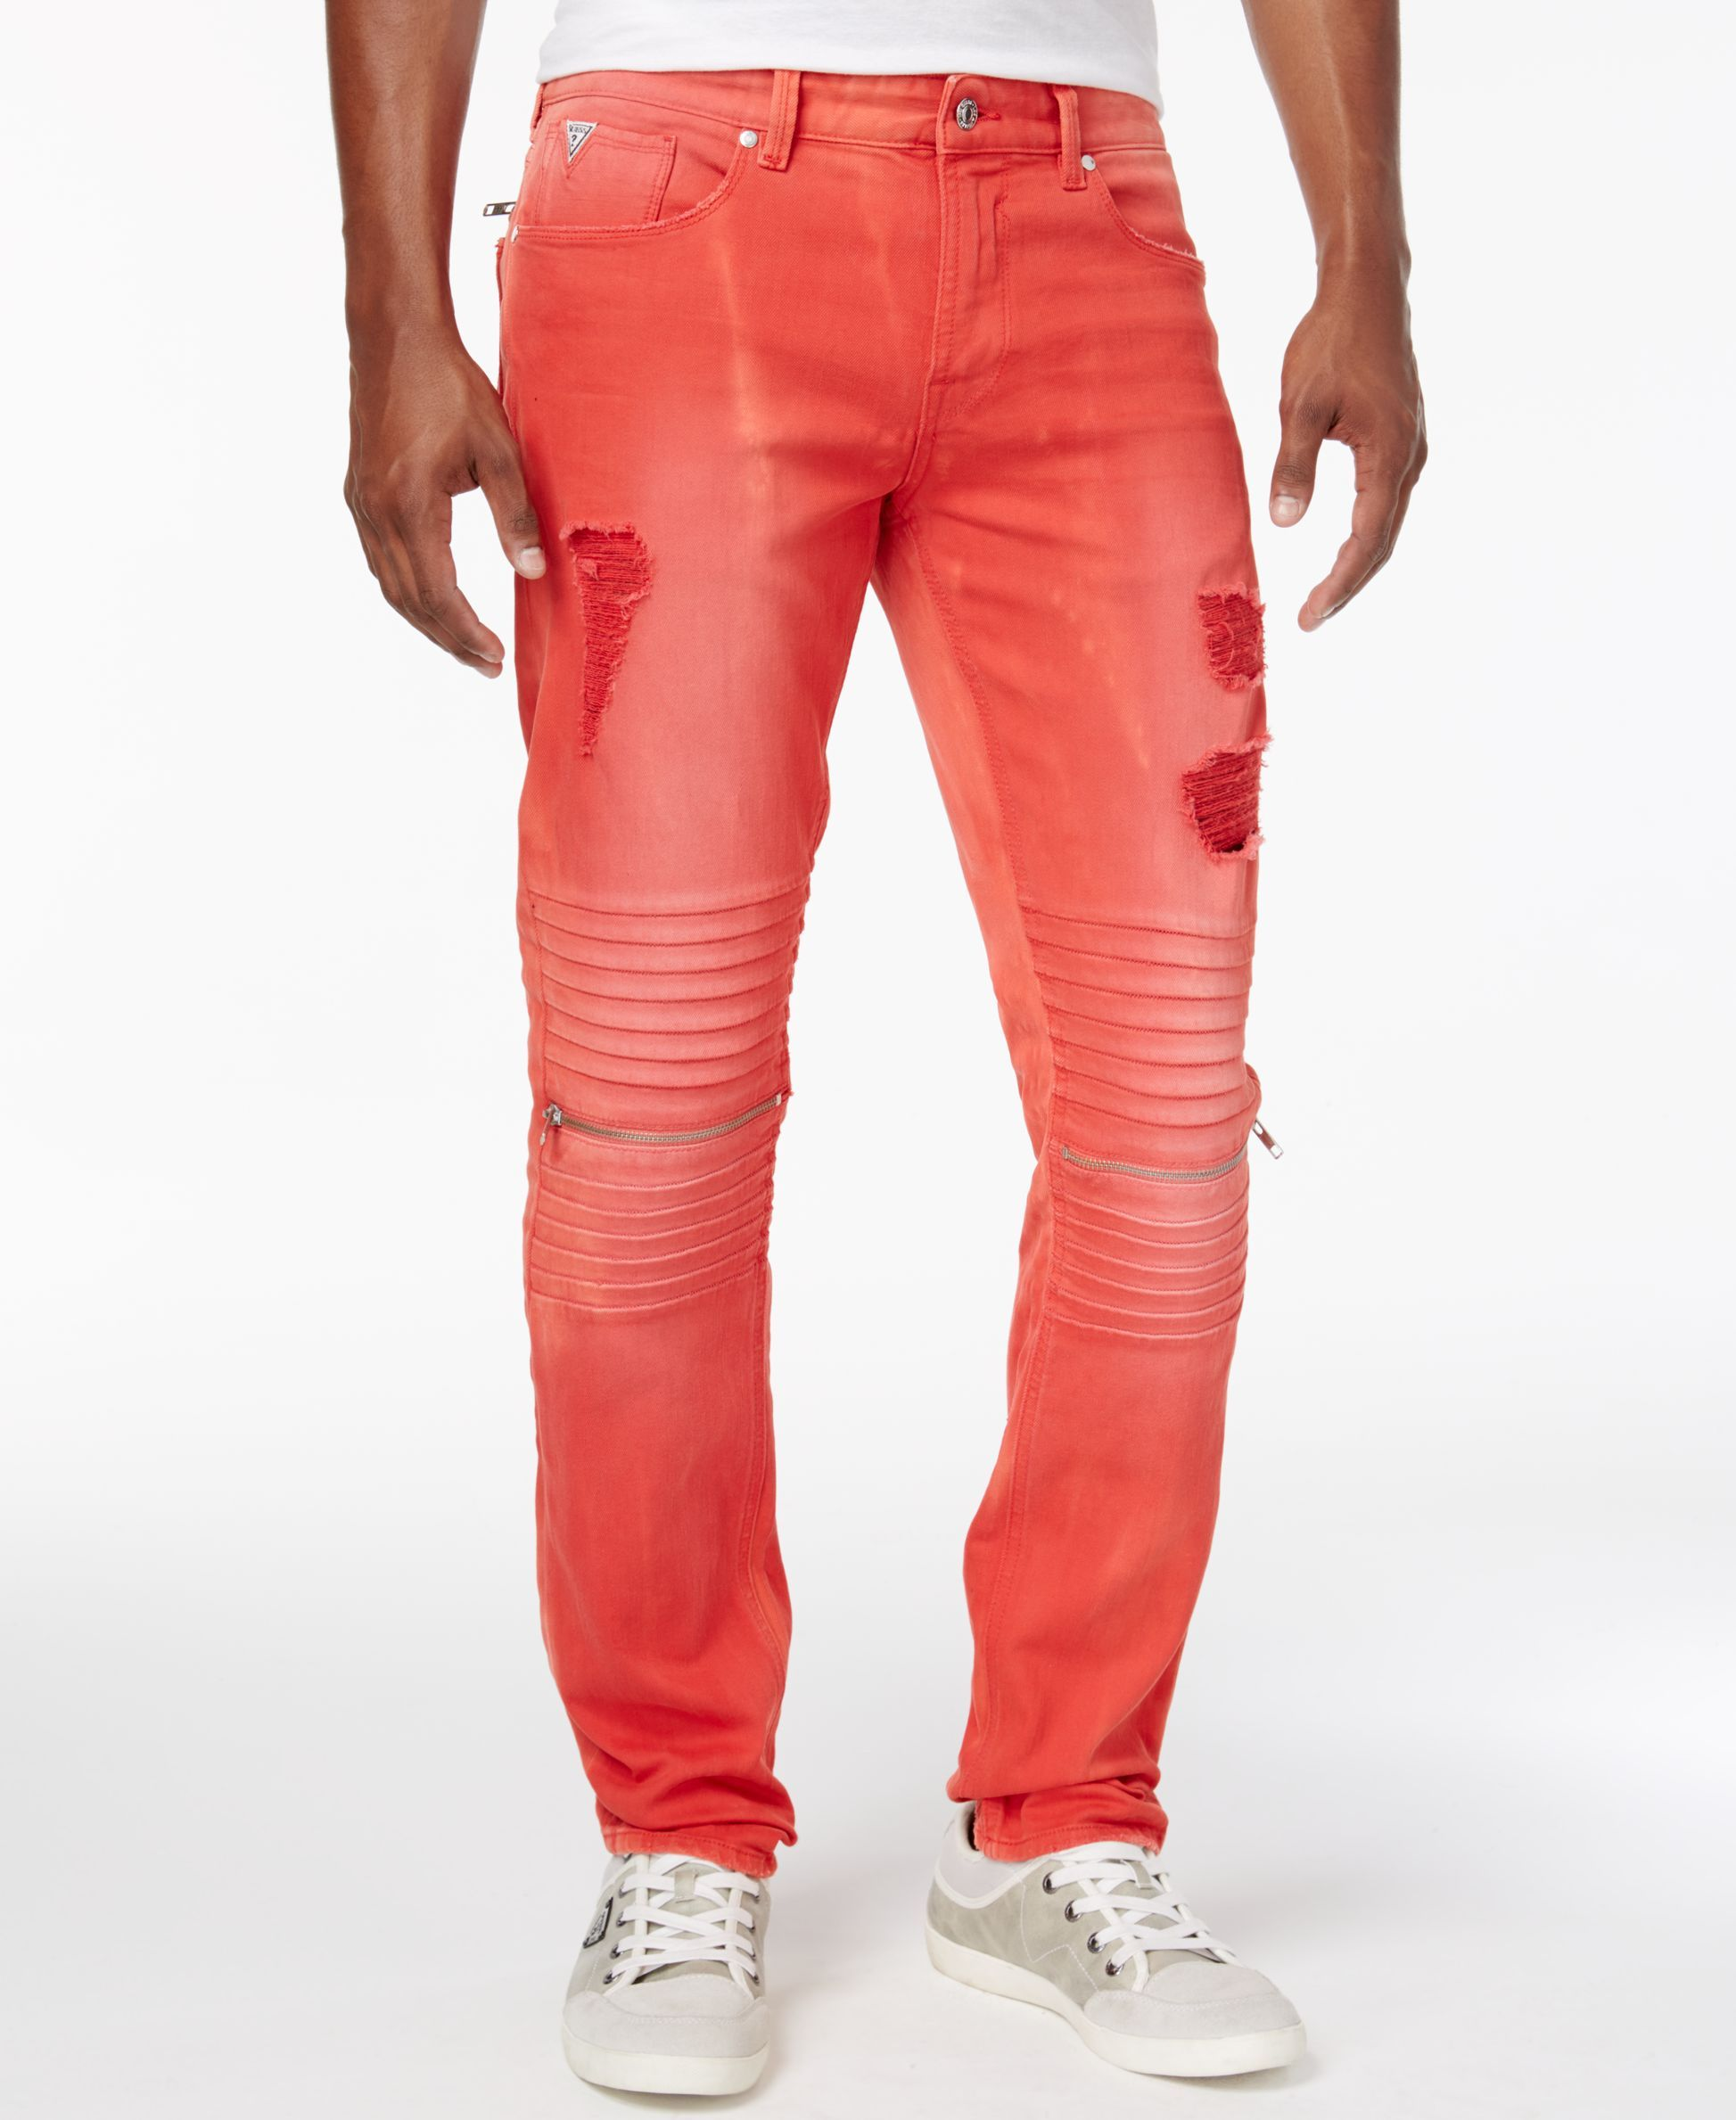 GUESS Men's Slim Fit Ripped Moto Jeans & Reviews Jeans